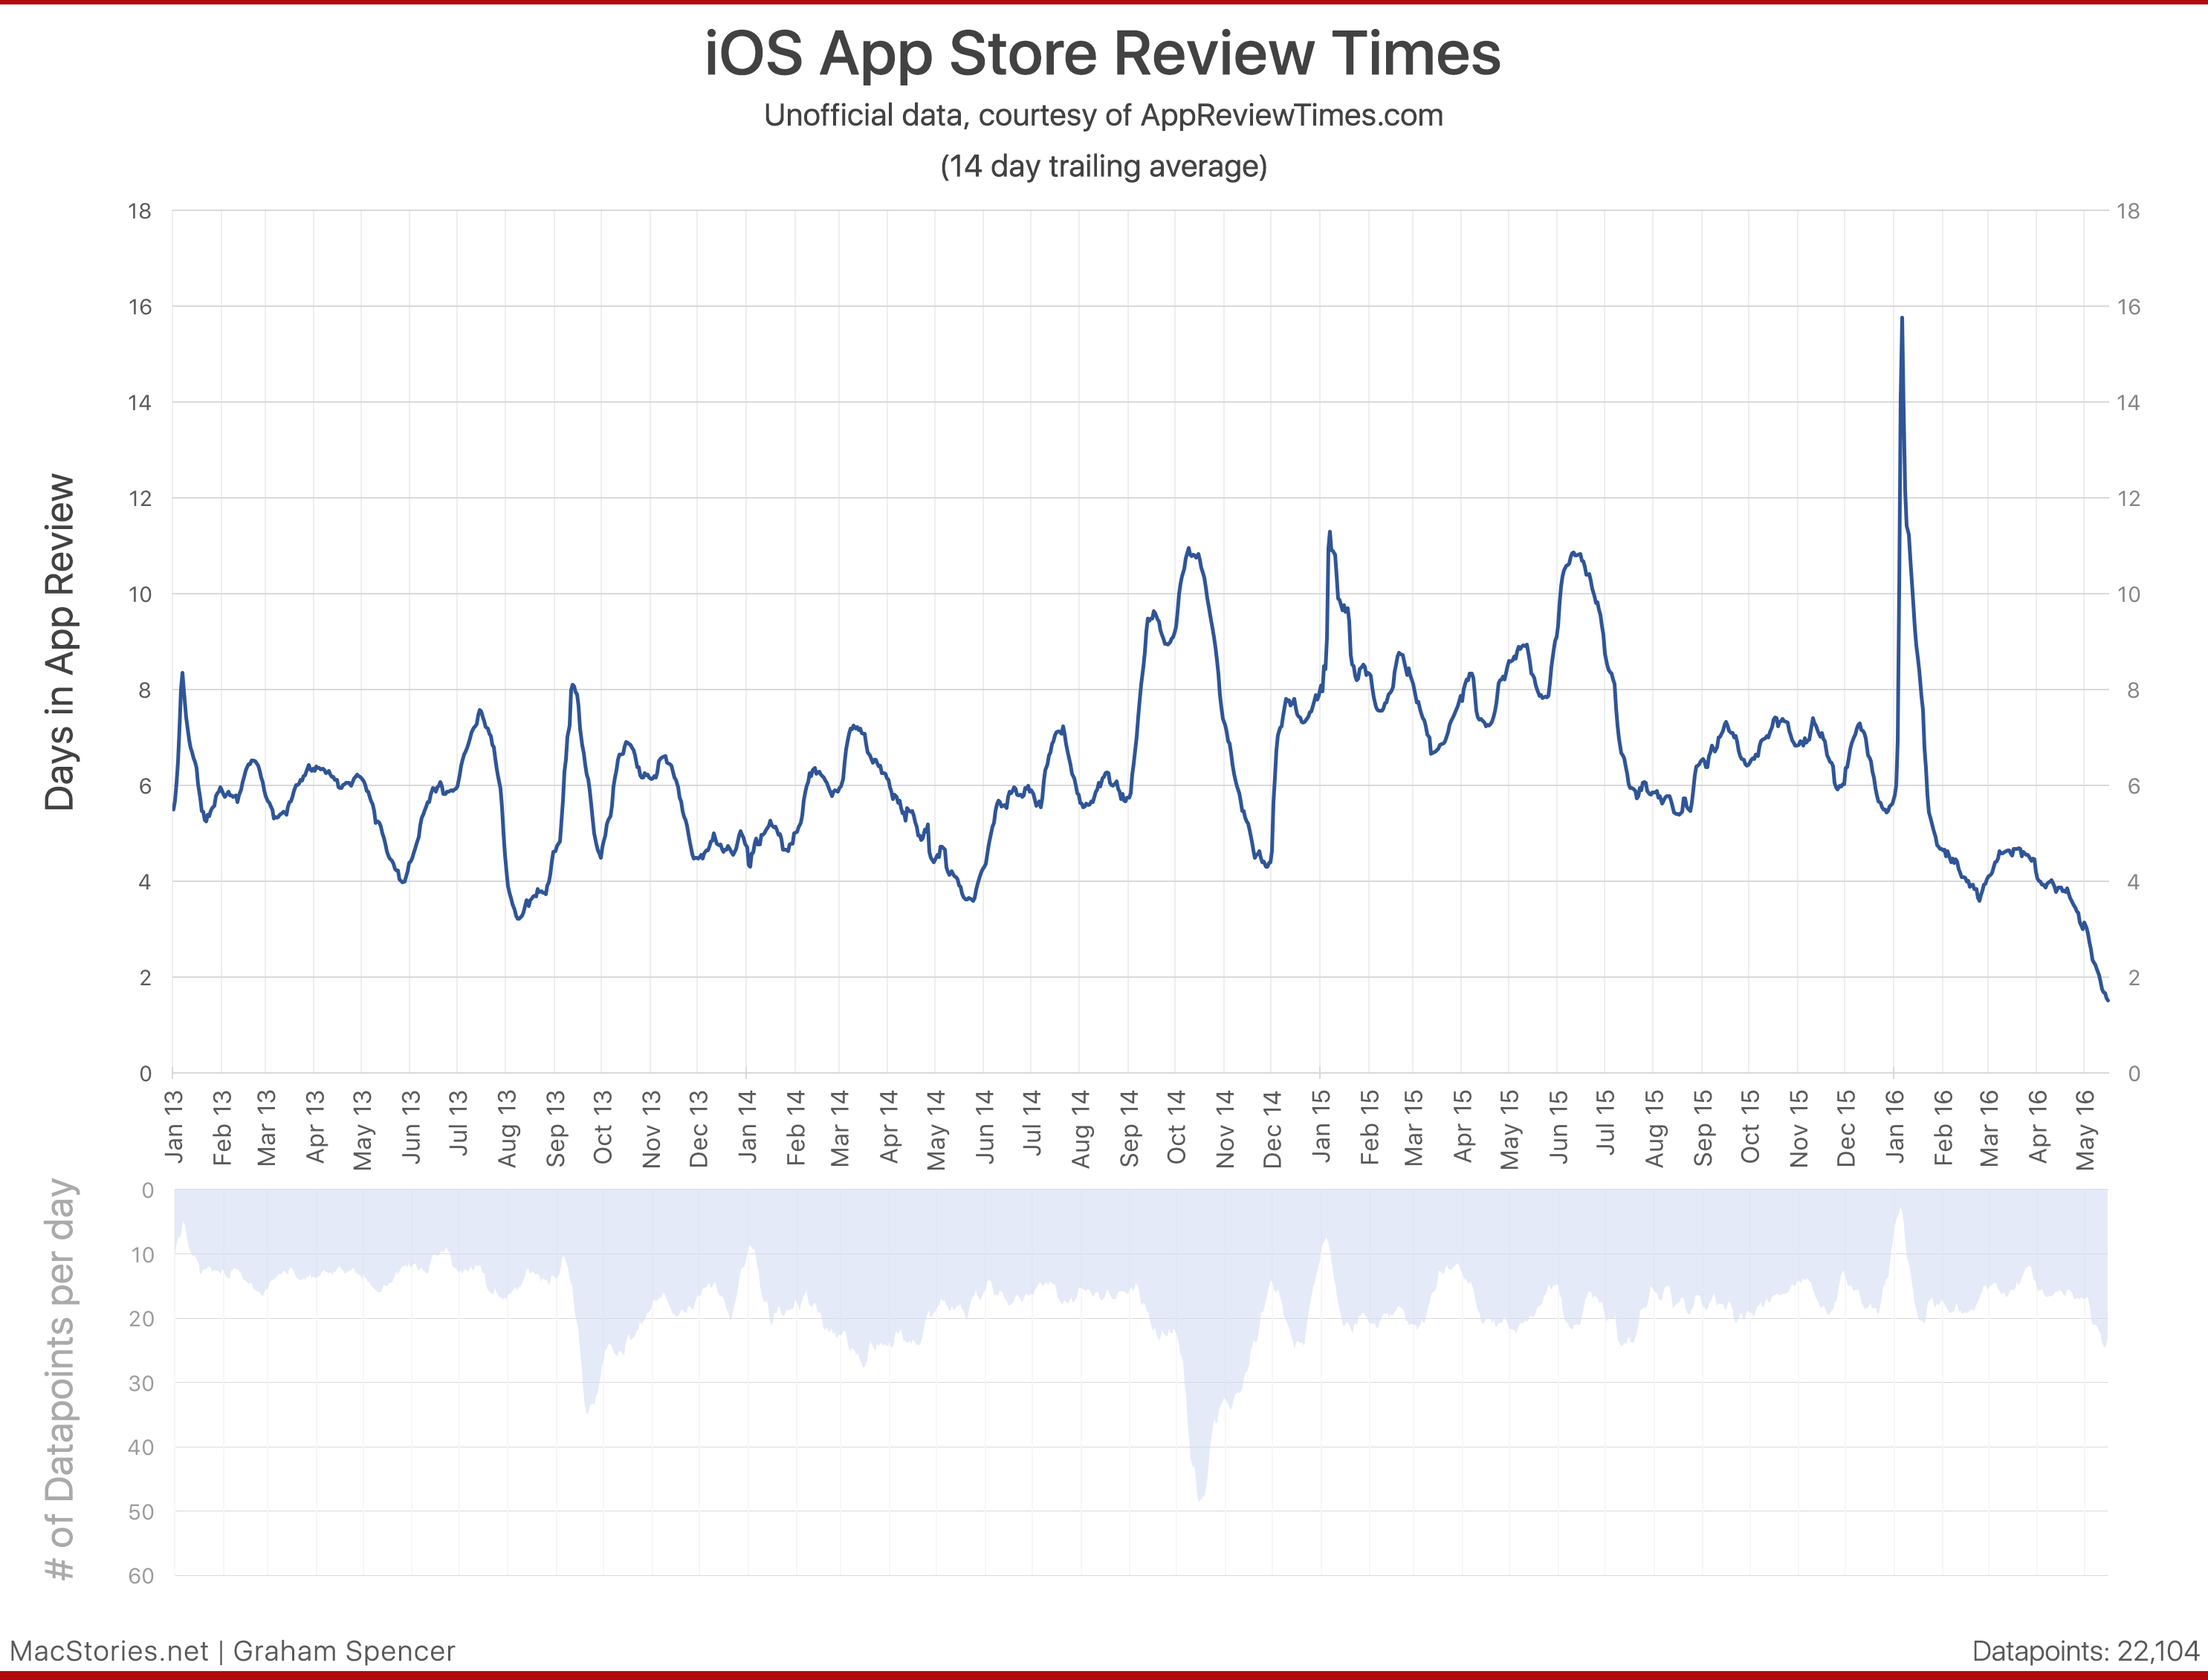 Data courtesy of AppReviewTimes.com